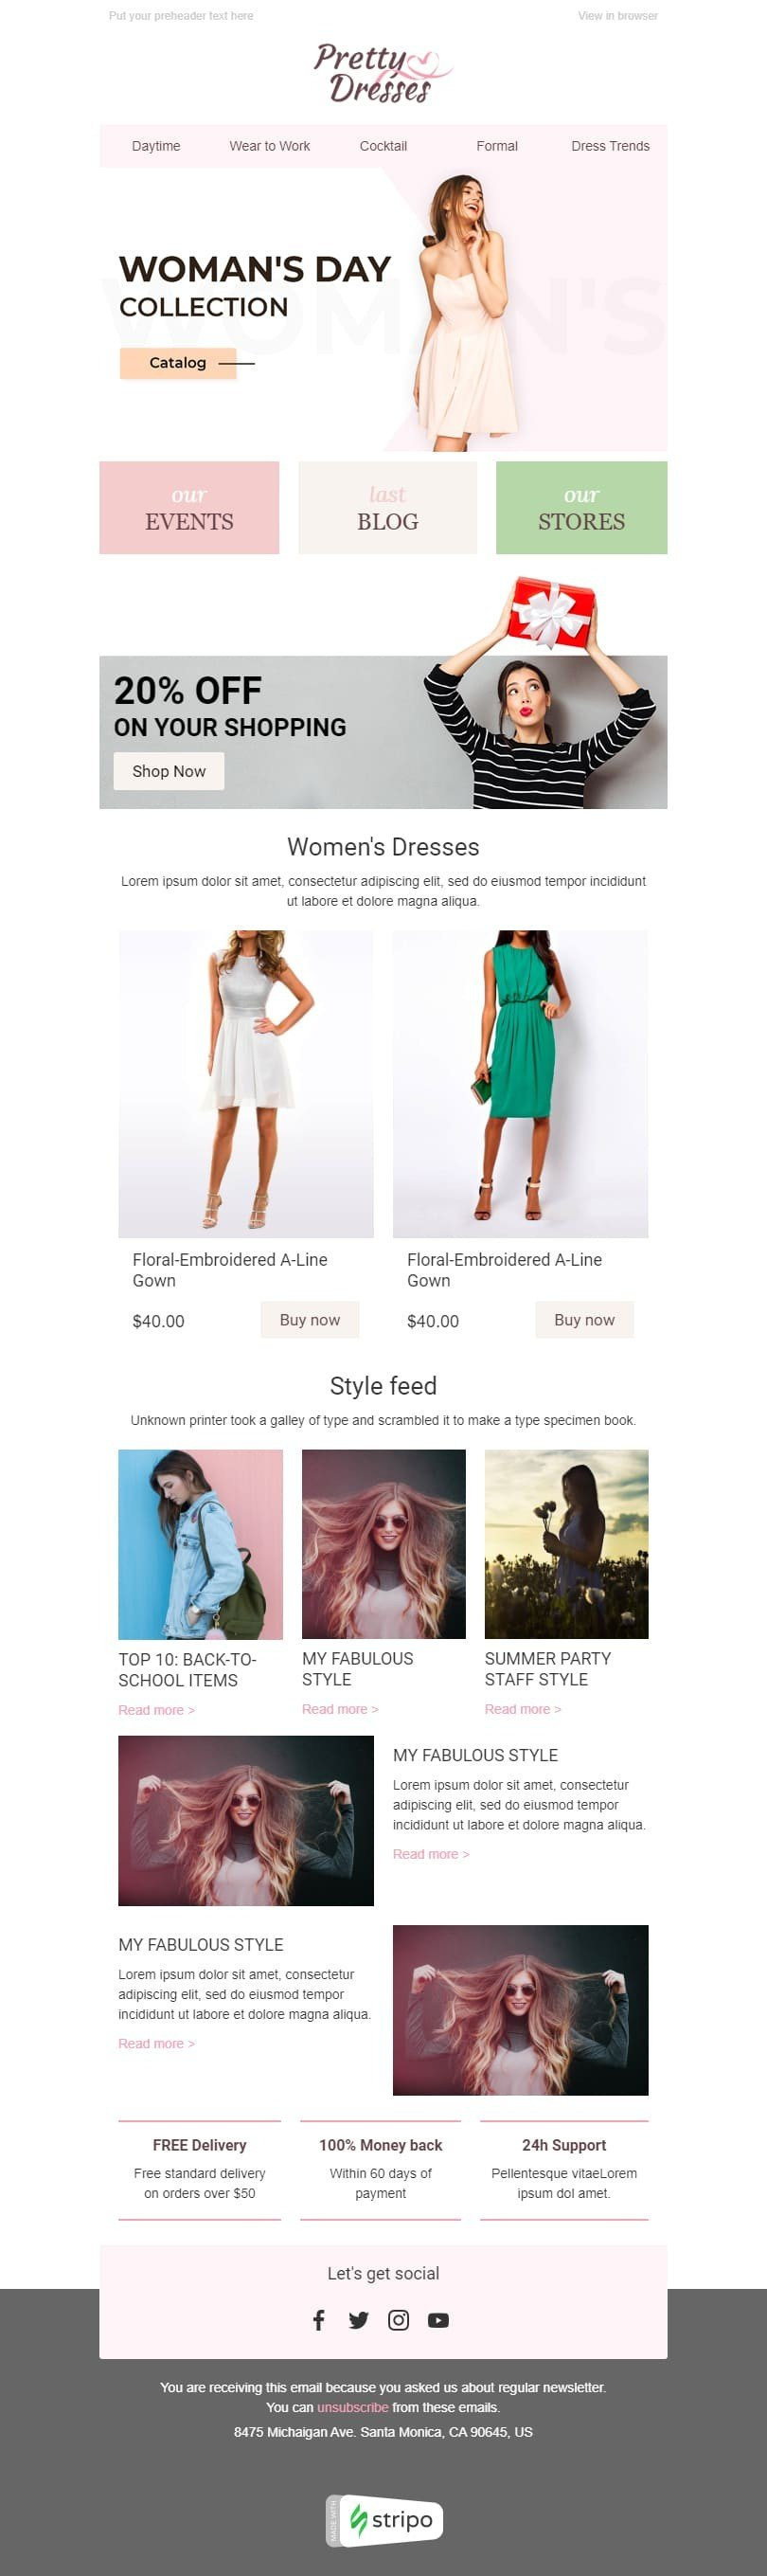 Women's Day Email Template «Women Joy» for Fashion industry desktop view